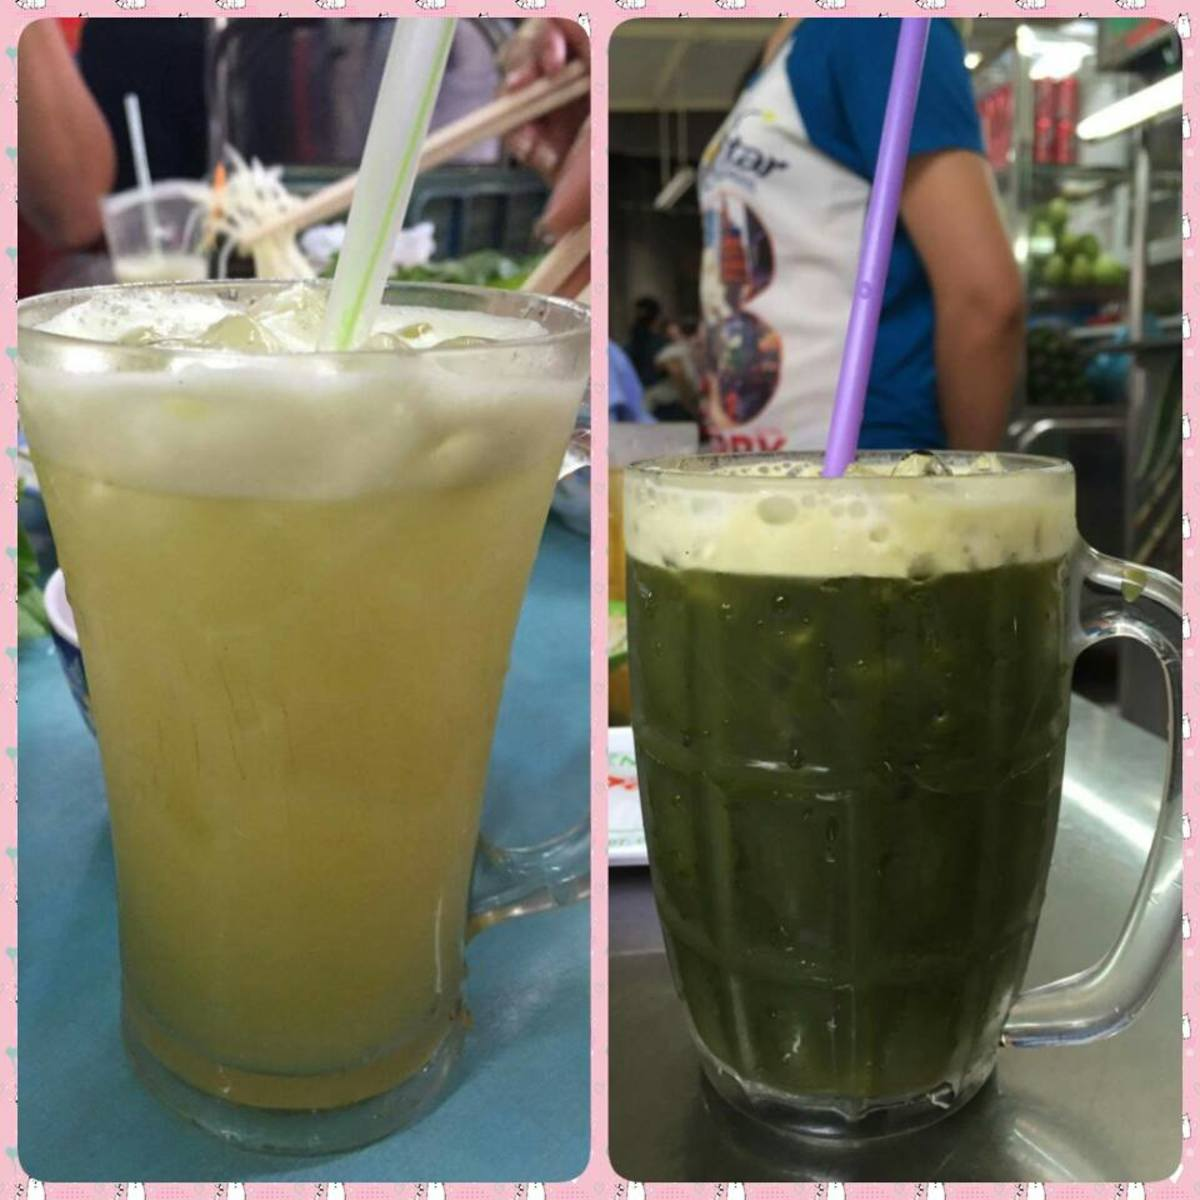 Sugar Cane Juice and Centella Smoothie Both are sold at the same place on the sidewalk.